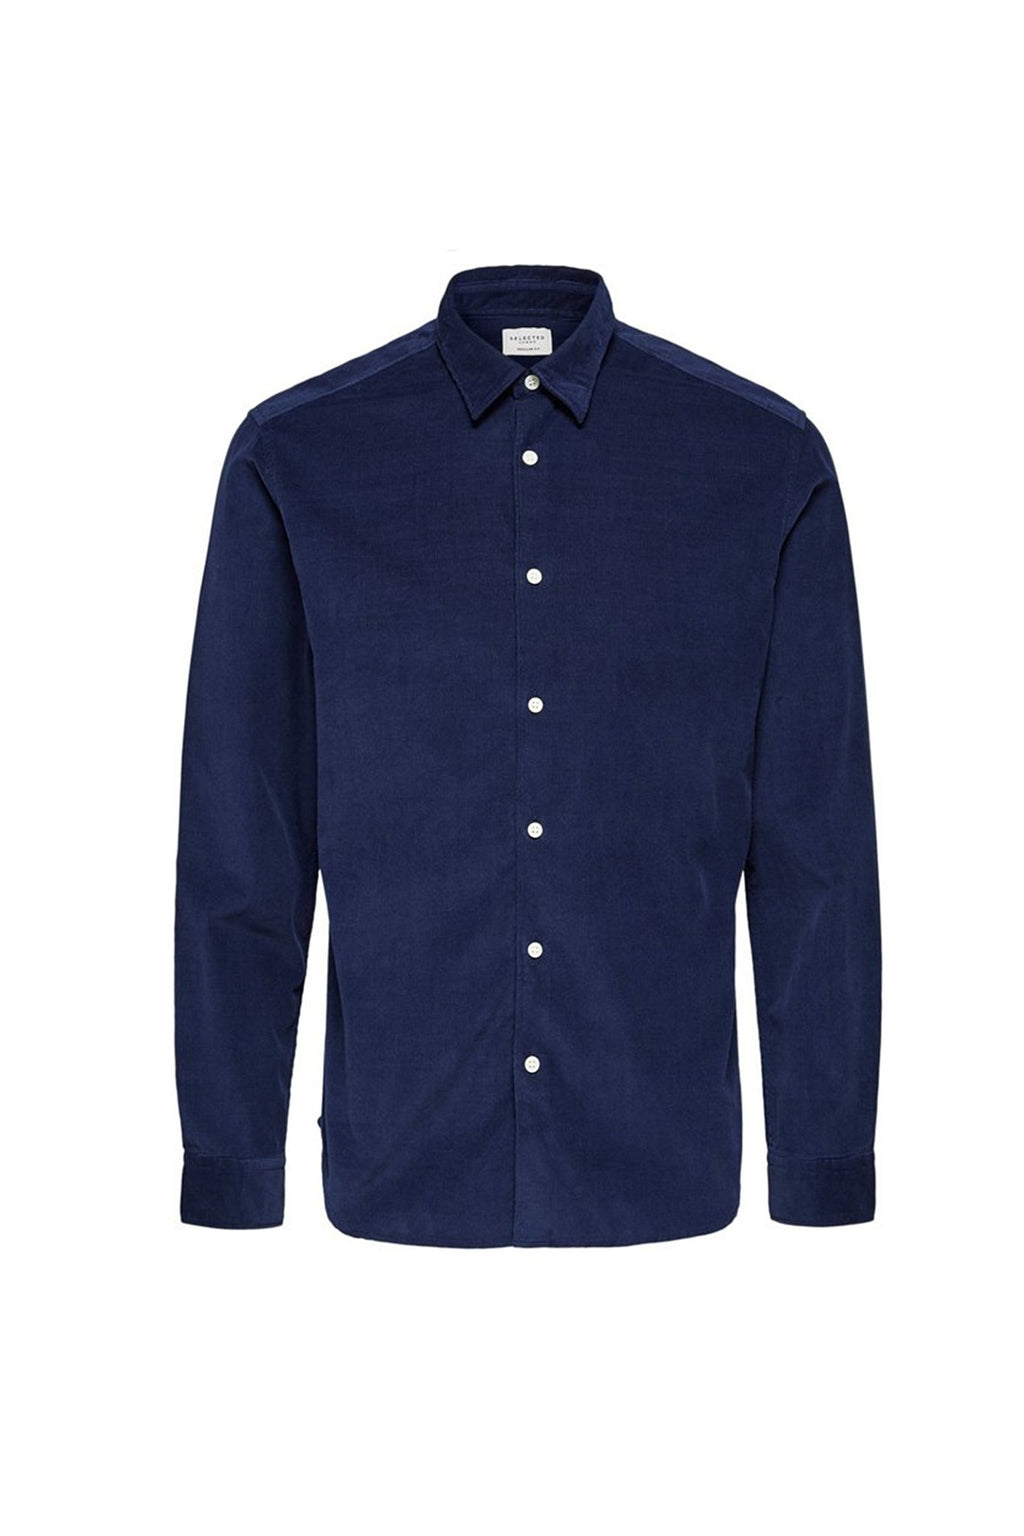 Rayson-Cord Shirt - Dark Blue